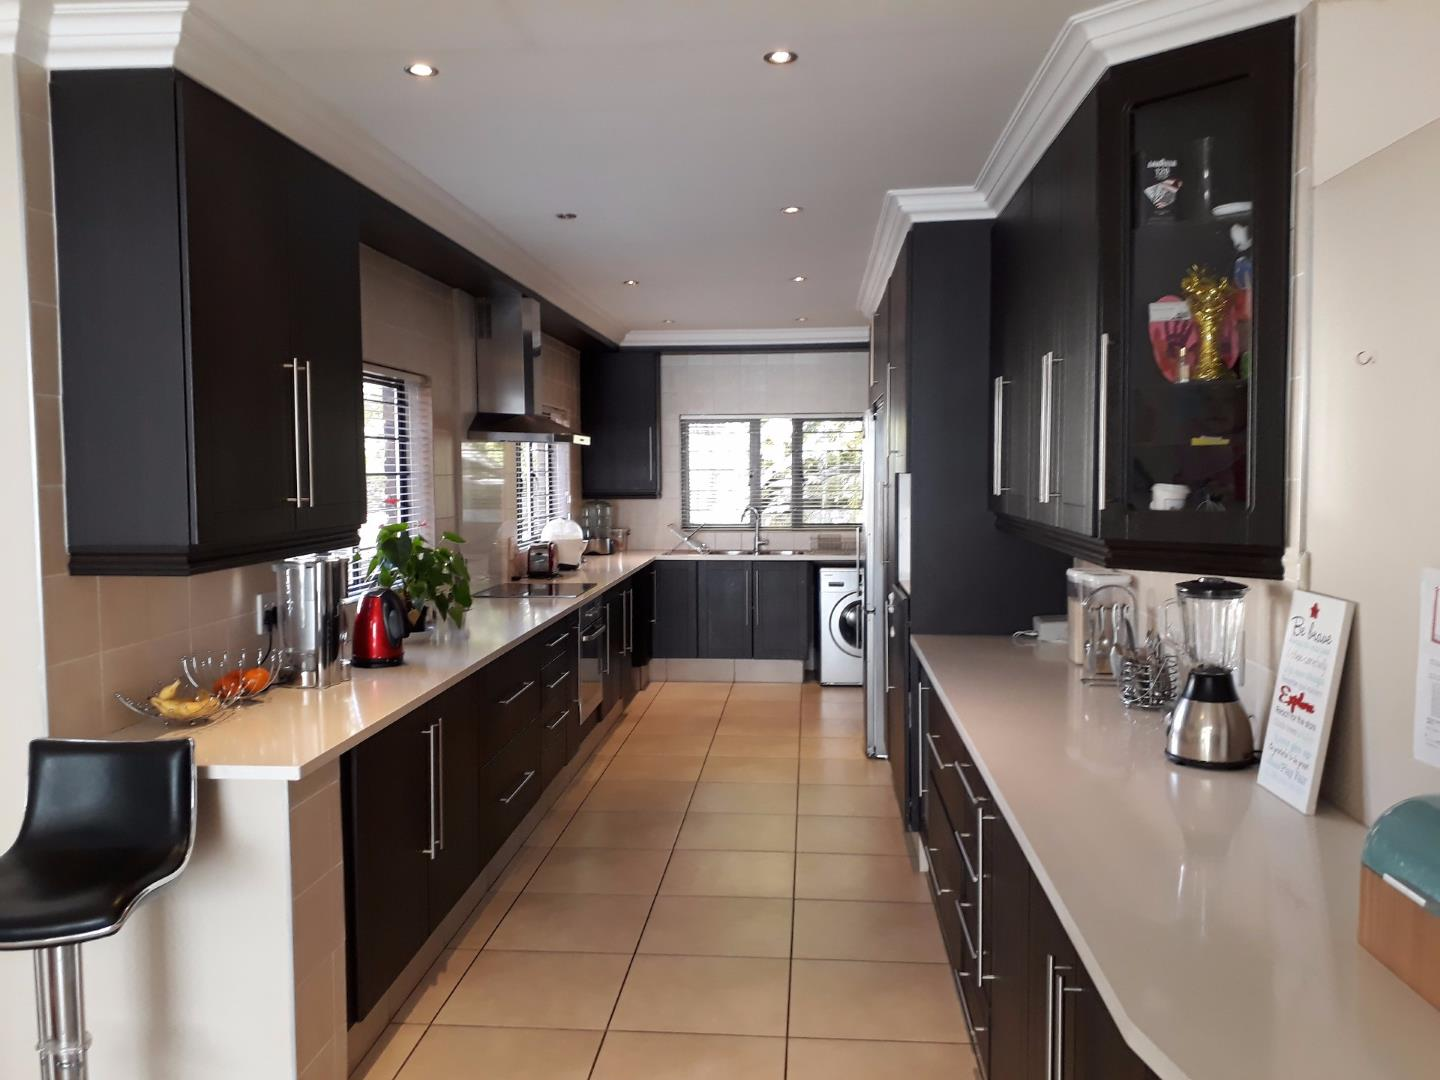 Johannesburg, Glenvista Property  | Houses For Sale Glenvista, Glenvista, House 4 bedrooms property for sale Price:3,330,000